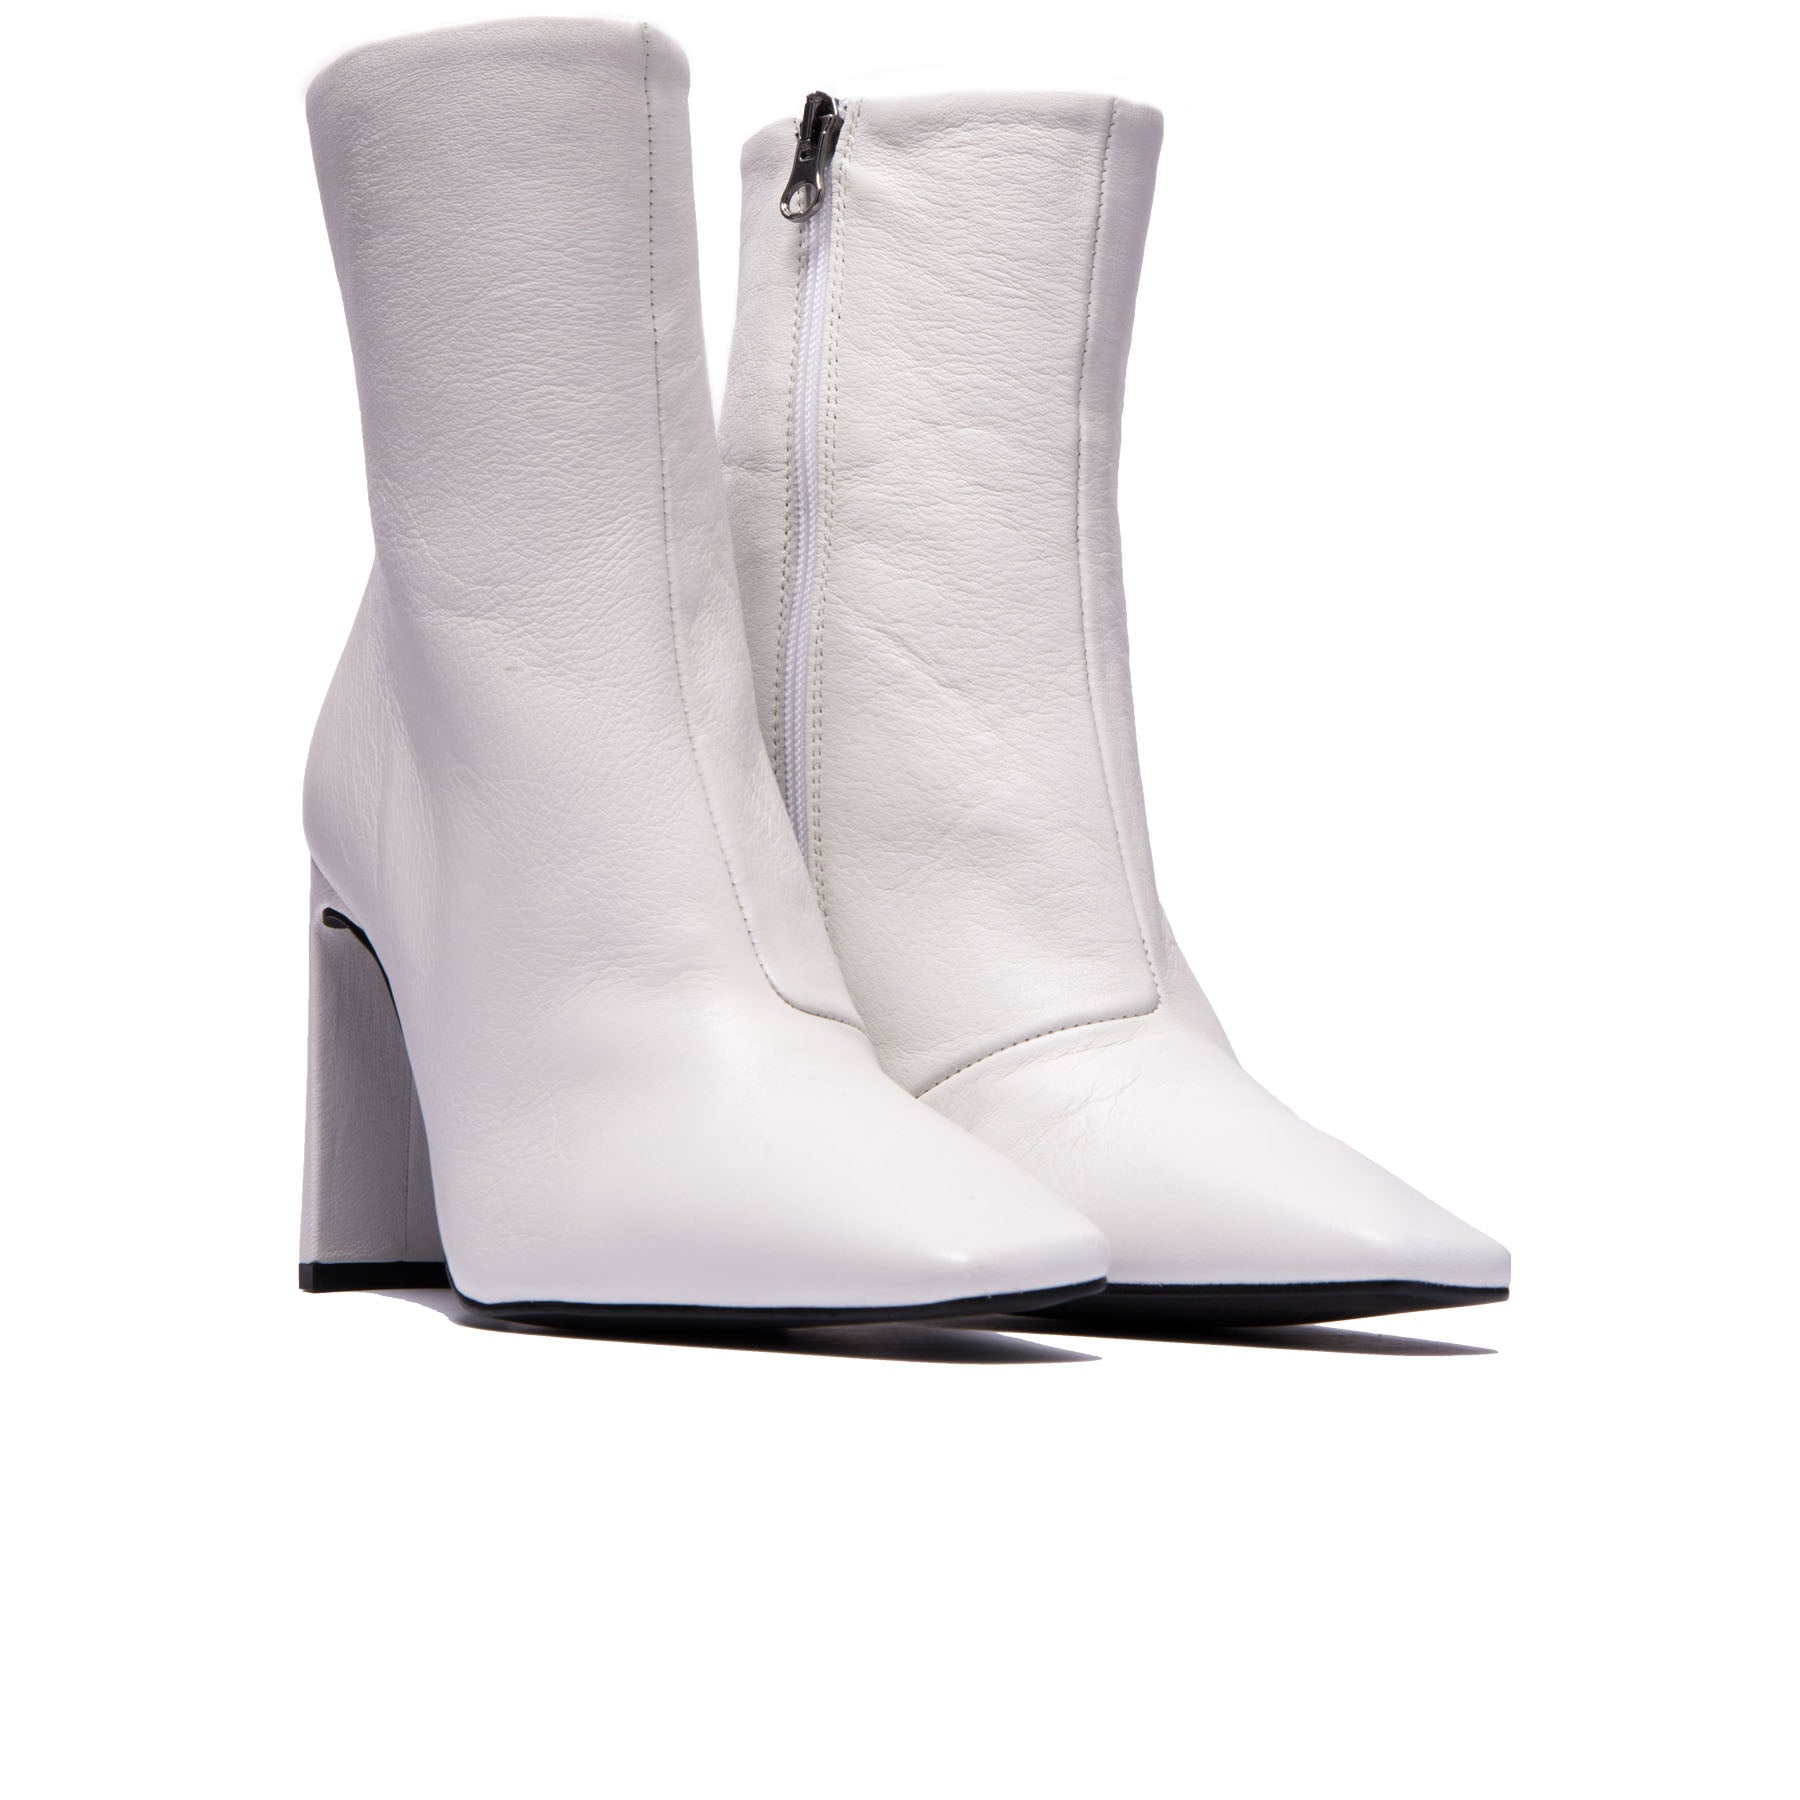 Lyon White Leather Ankle Boots